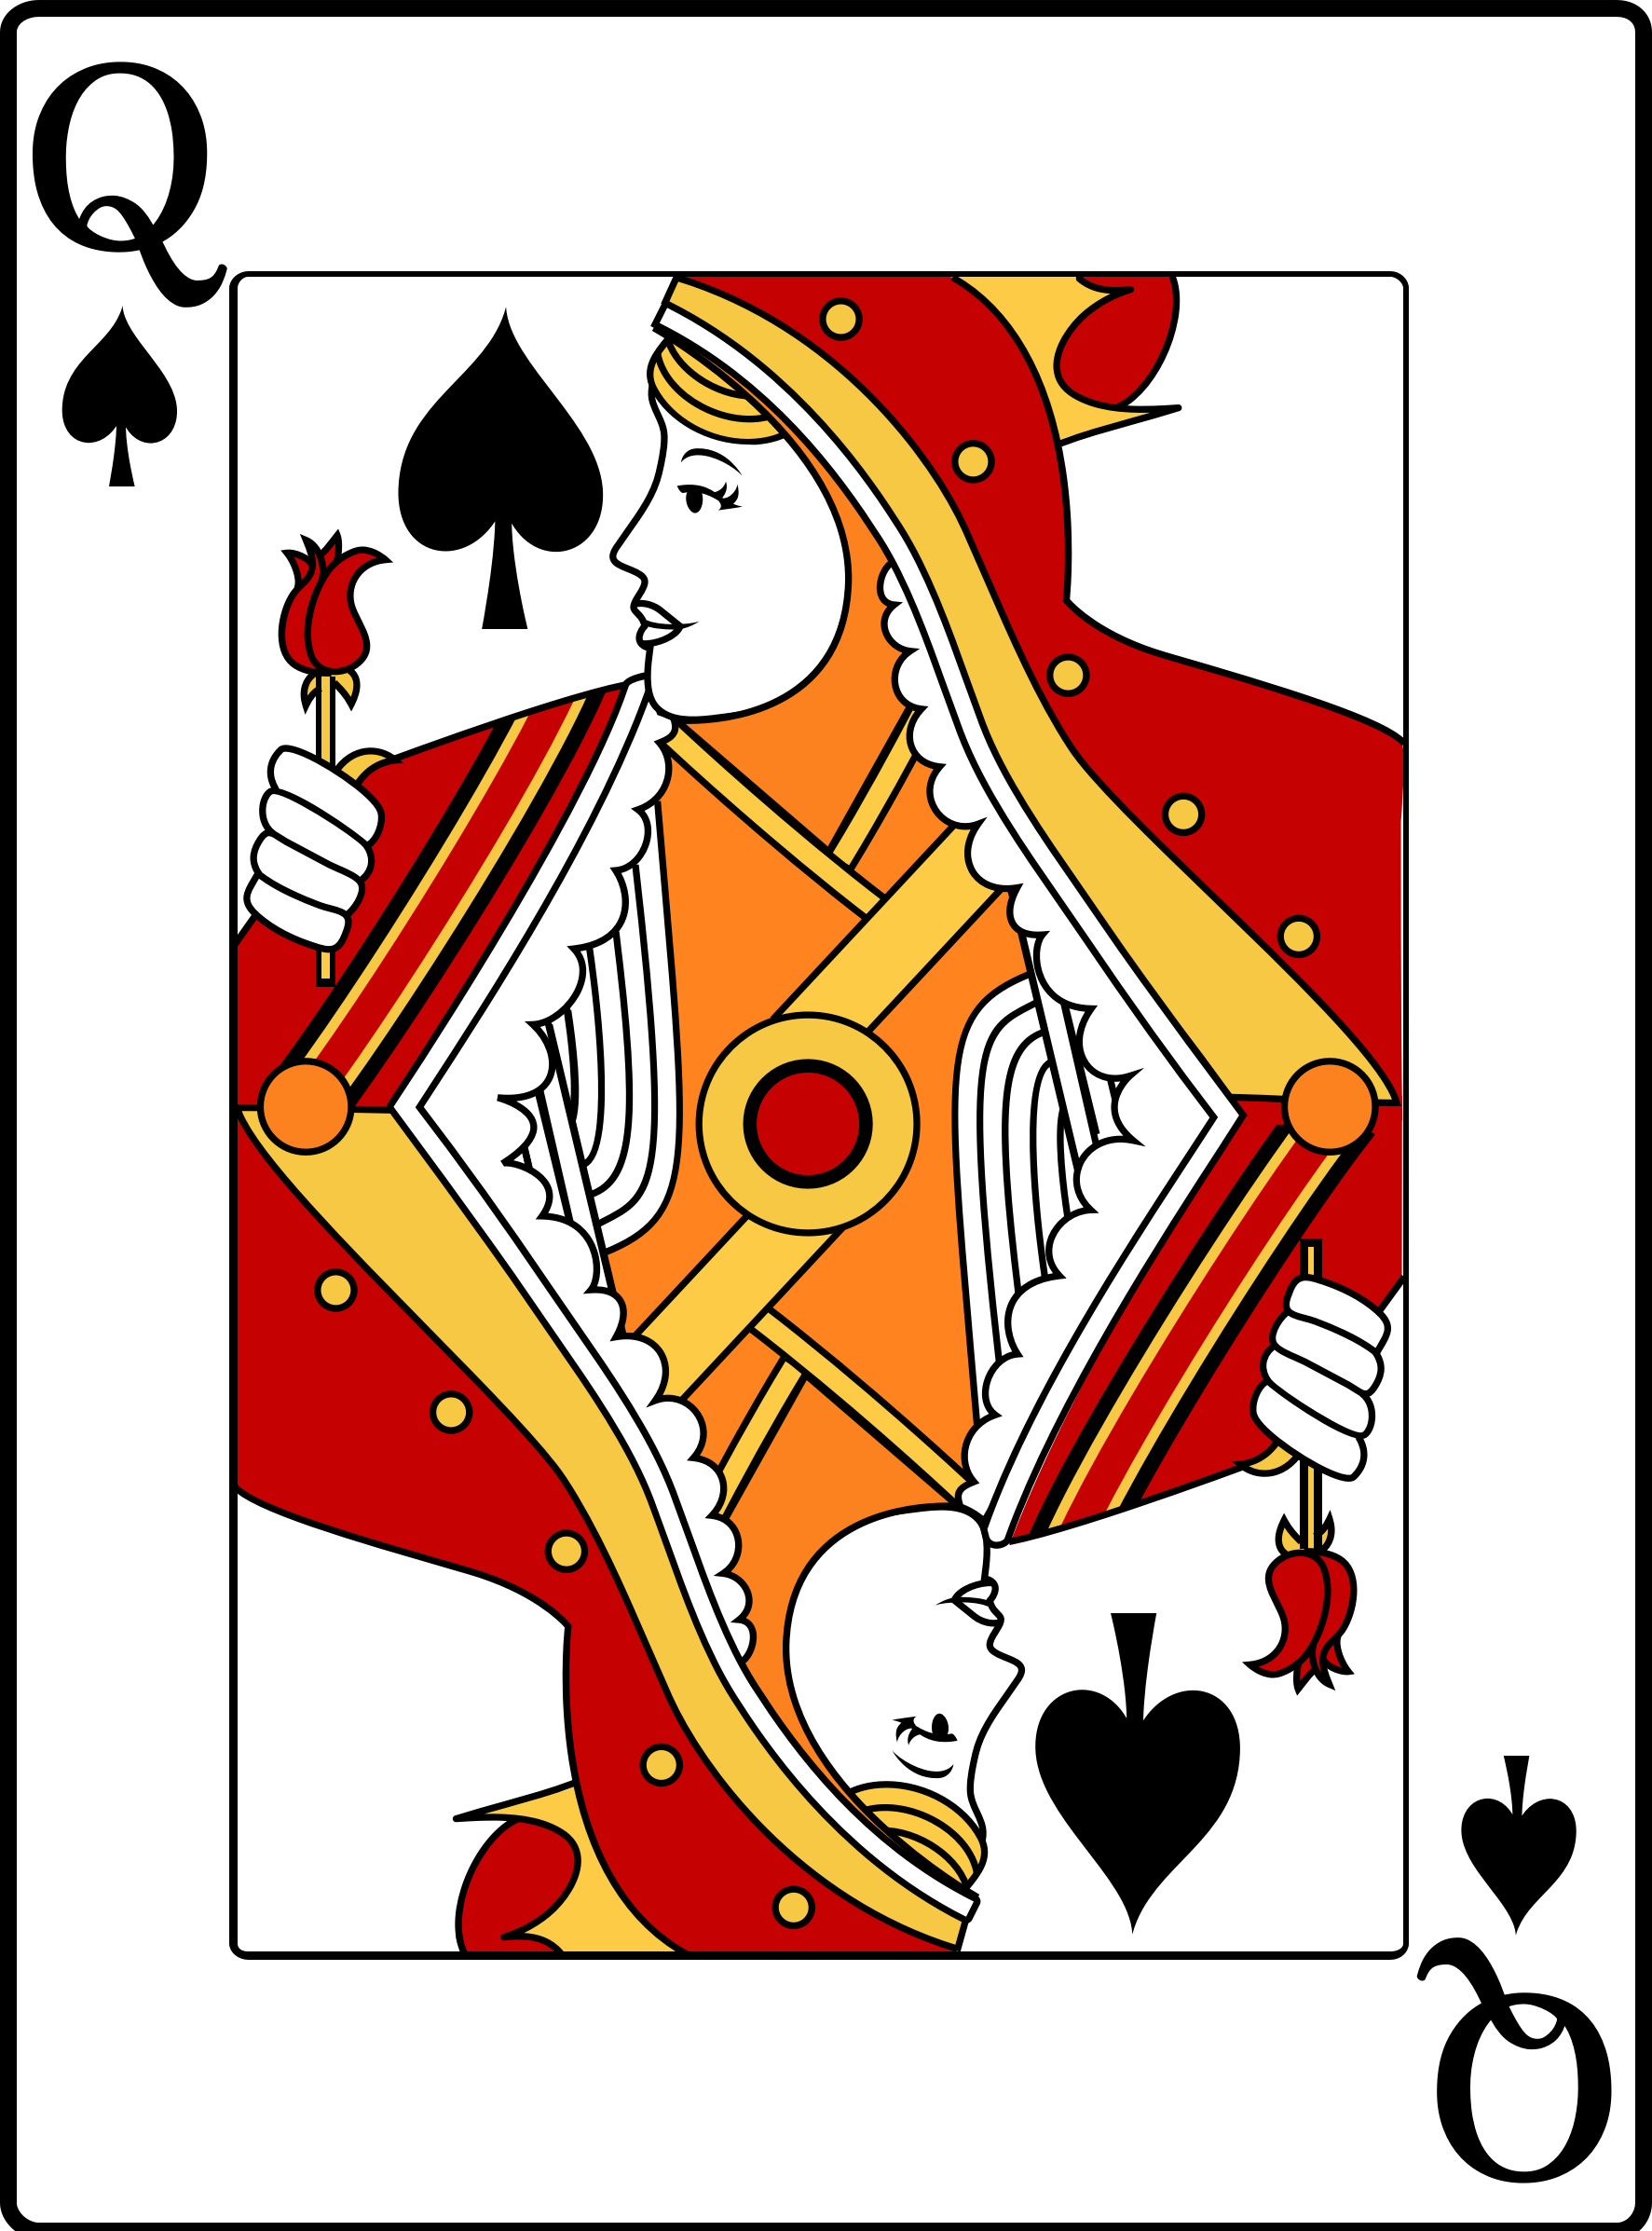 Queen of Spades by casino